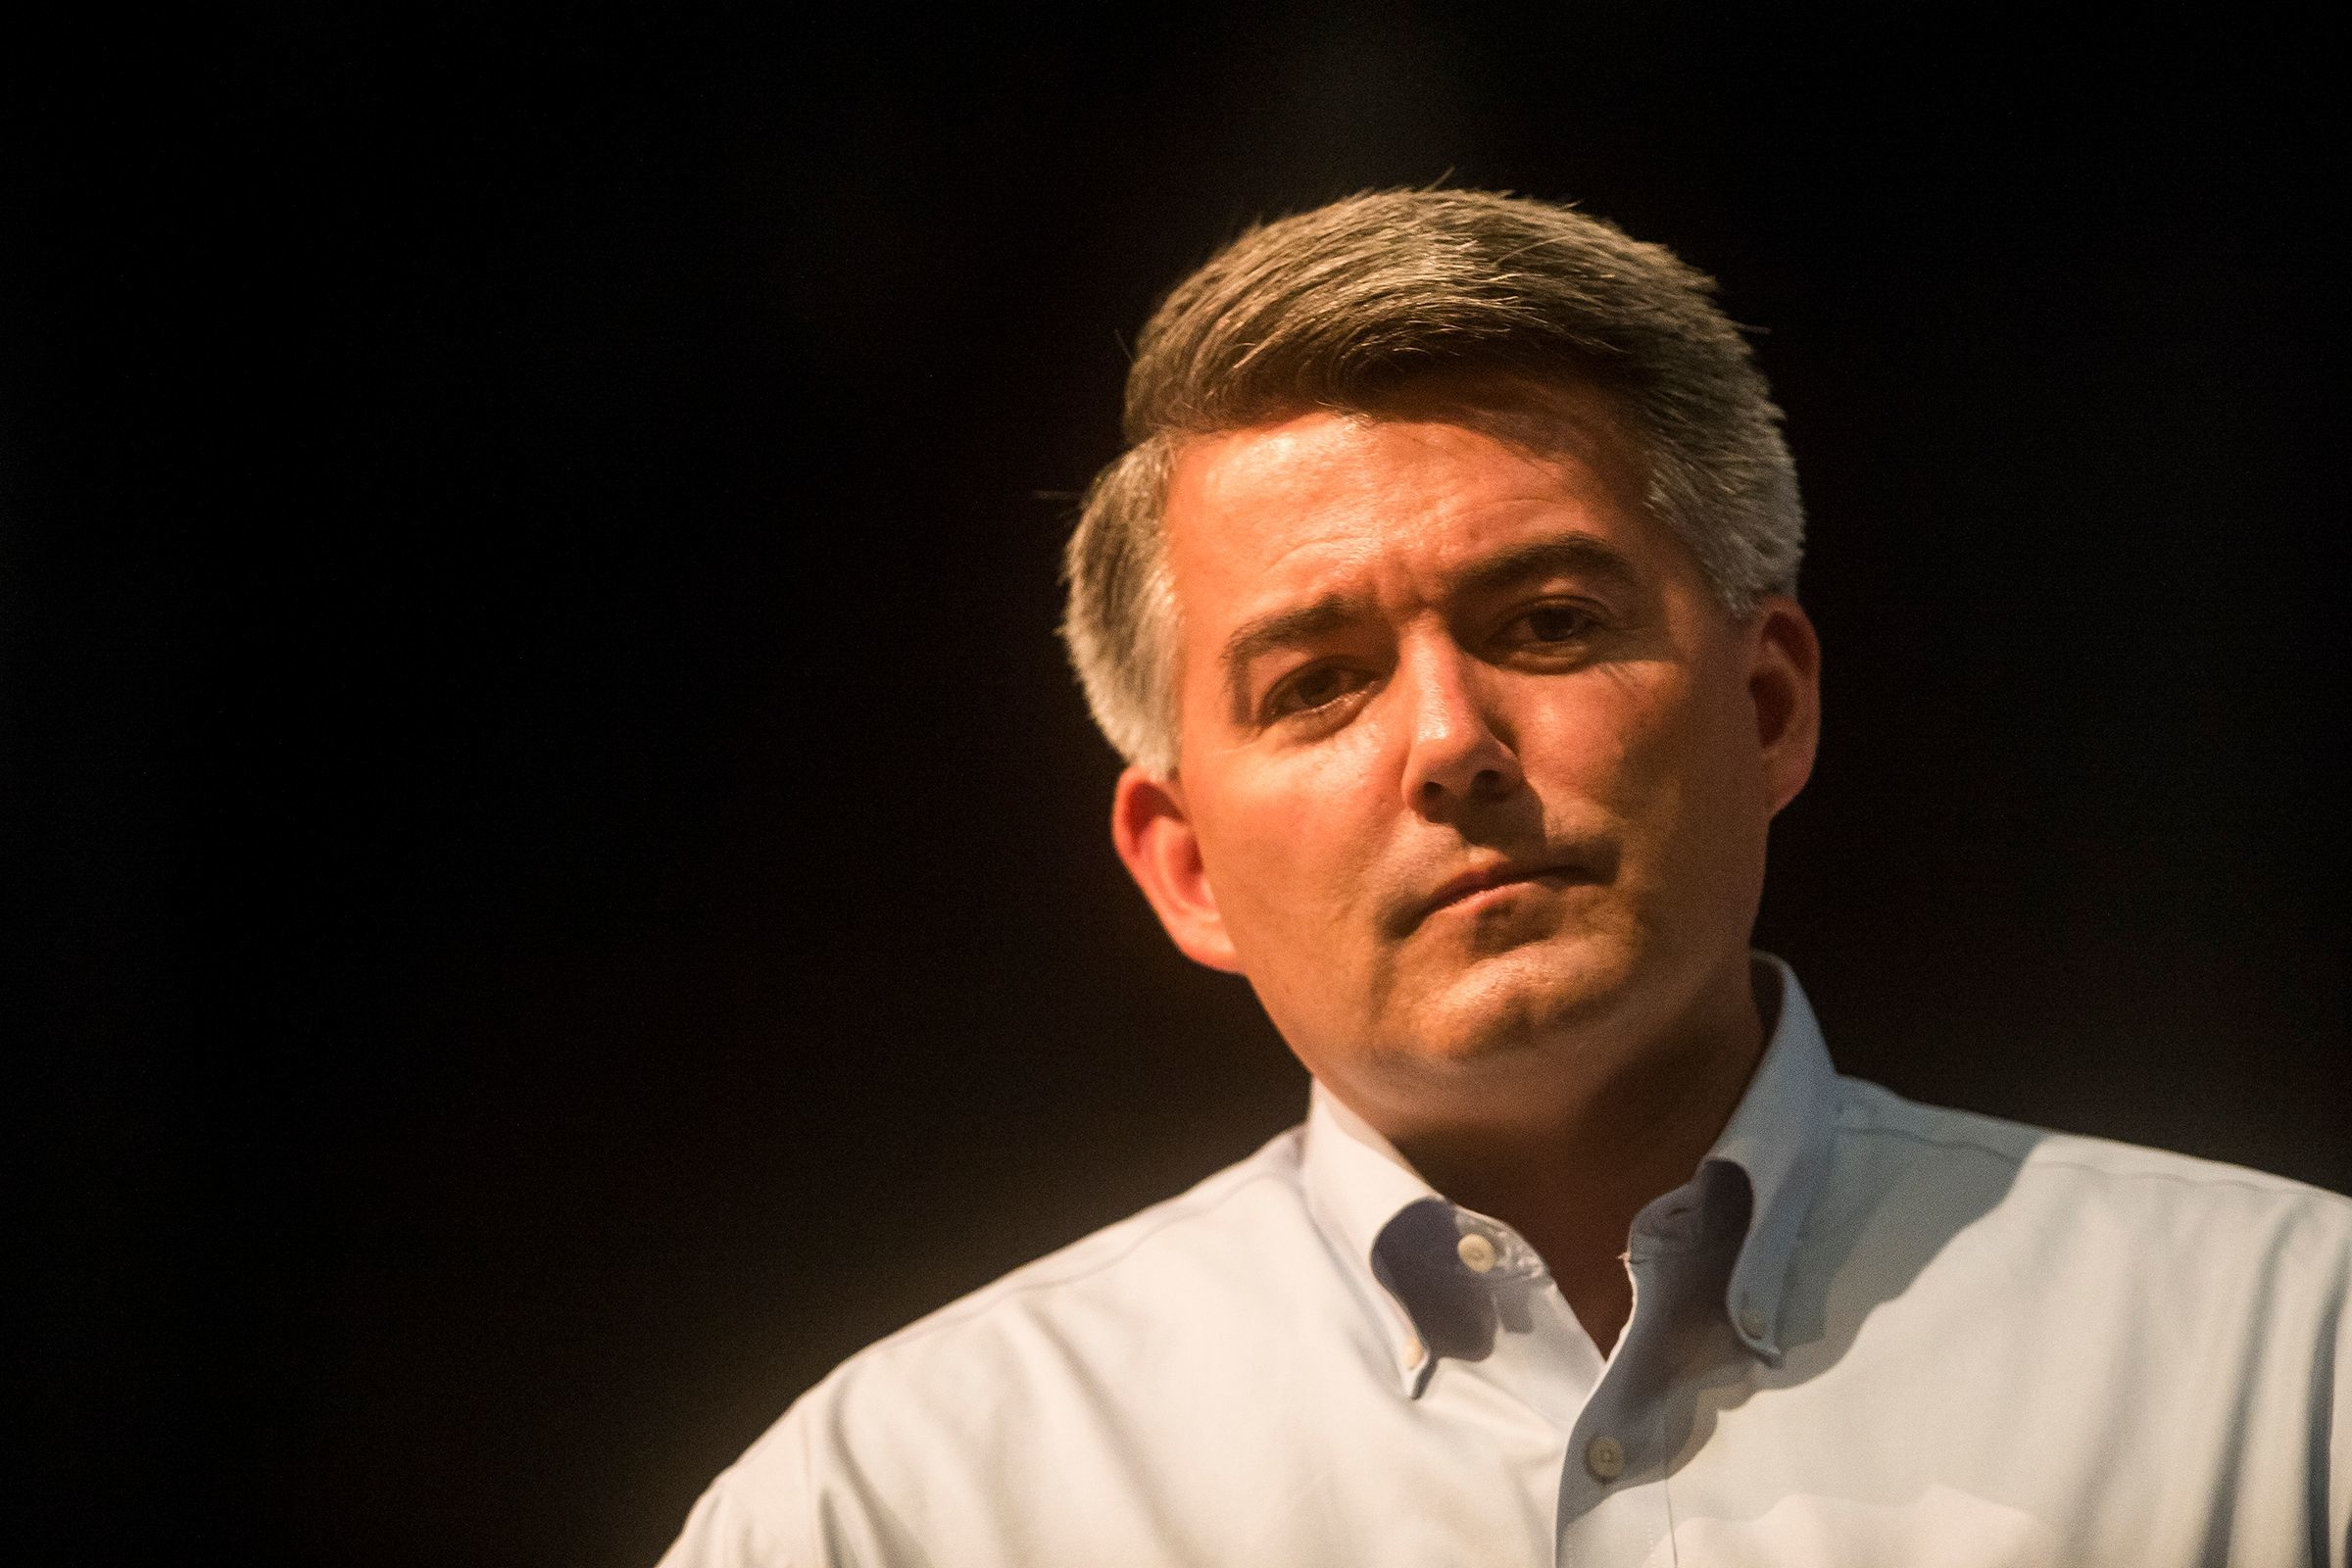 Sen. Cory Gardner speaks to a packed room, Tuesday, August 15, 2017, during a Town Hall meeting with Sen. Cory Gardner at the University Schools Auditorium in Greeley, Colo.